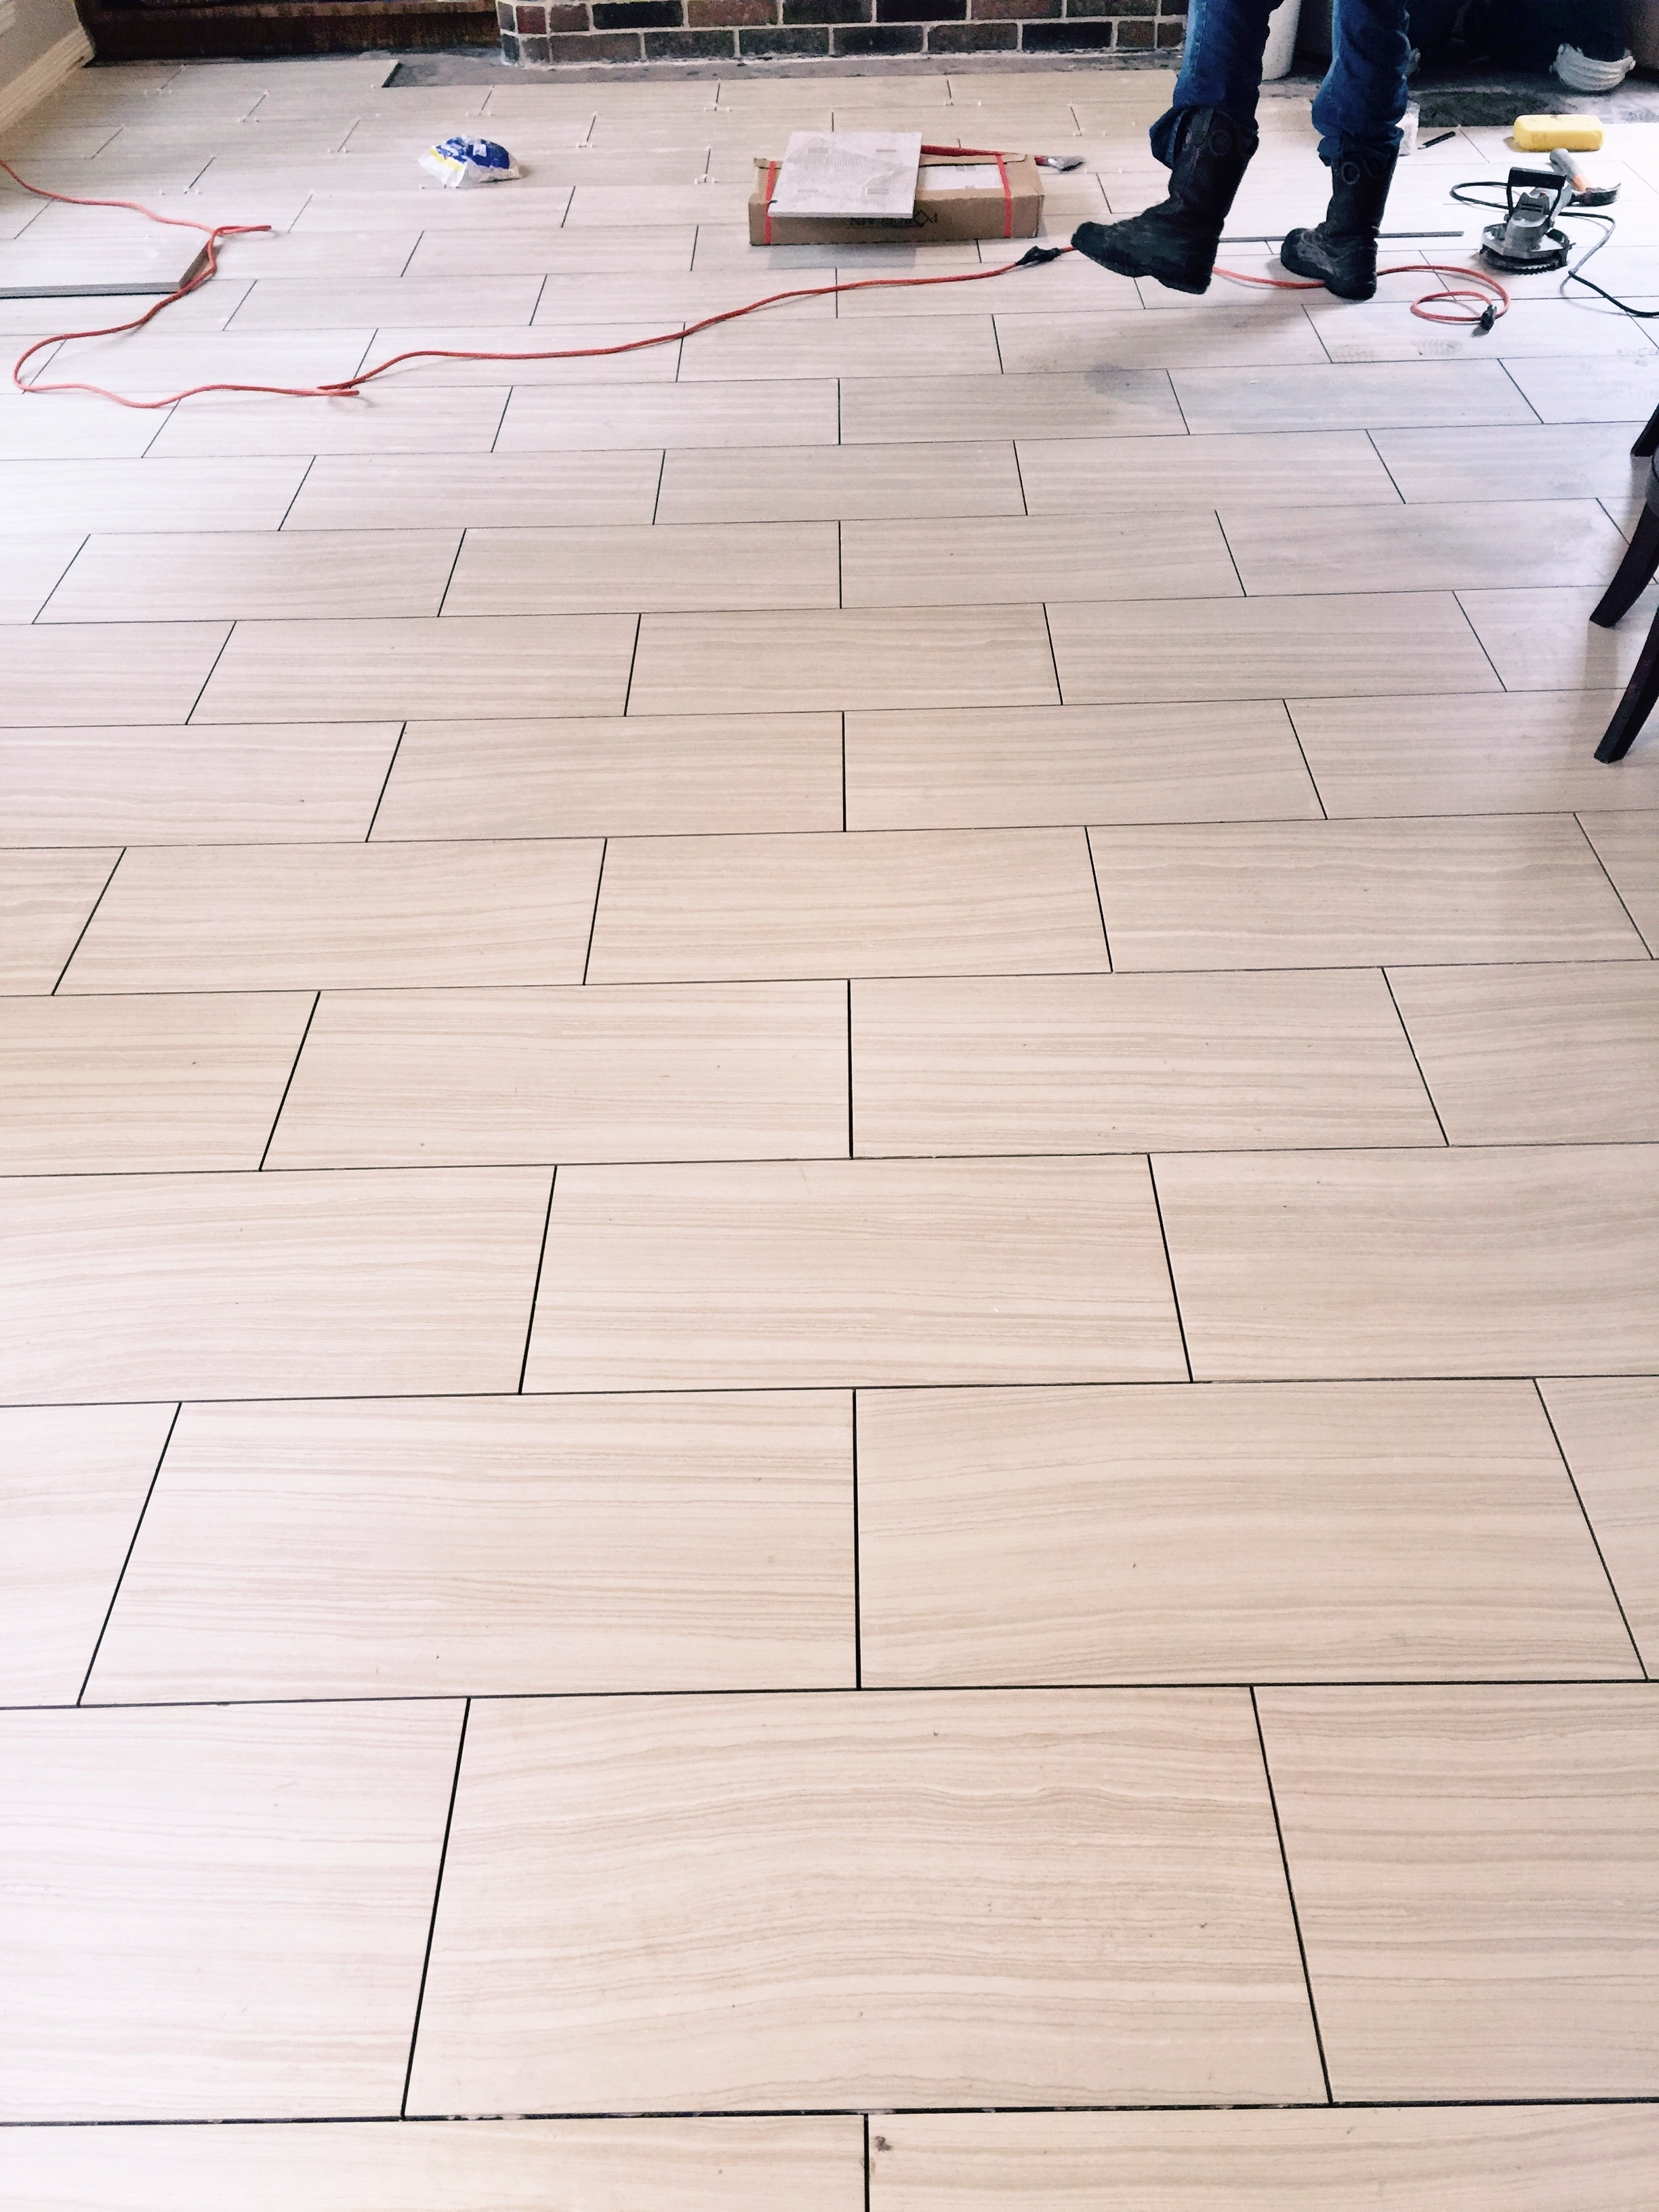 12 x 24 tile floor being laid across the narrow width of the room to make the room appear wider.